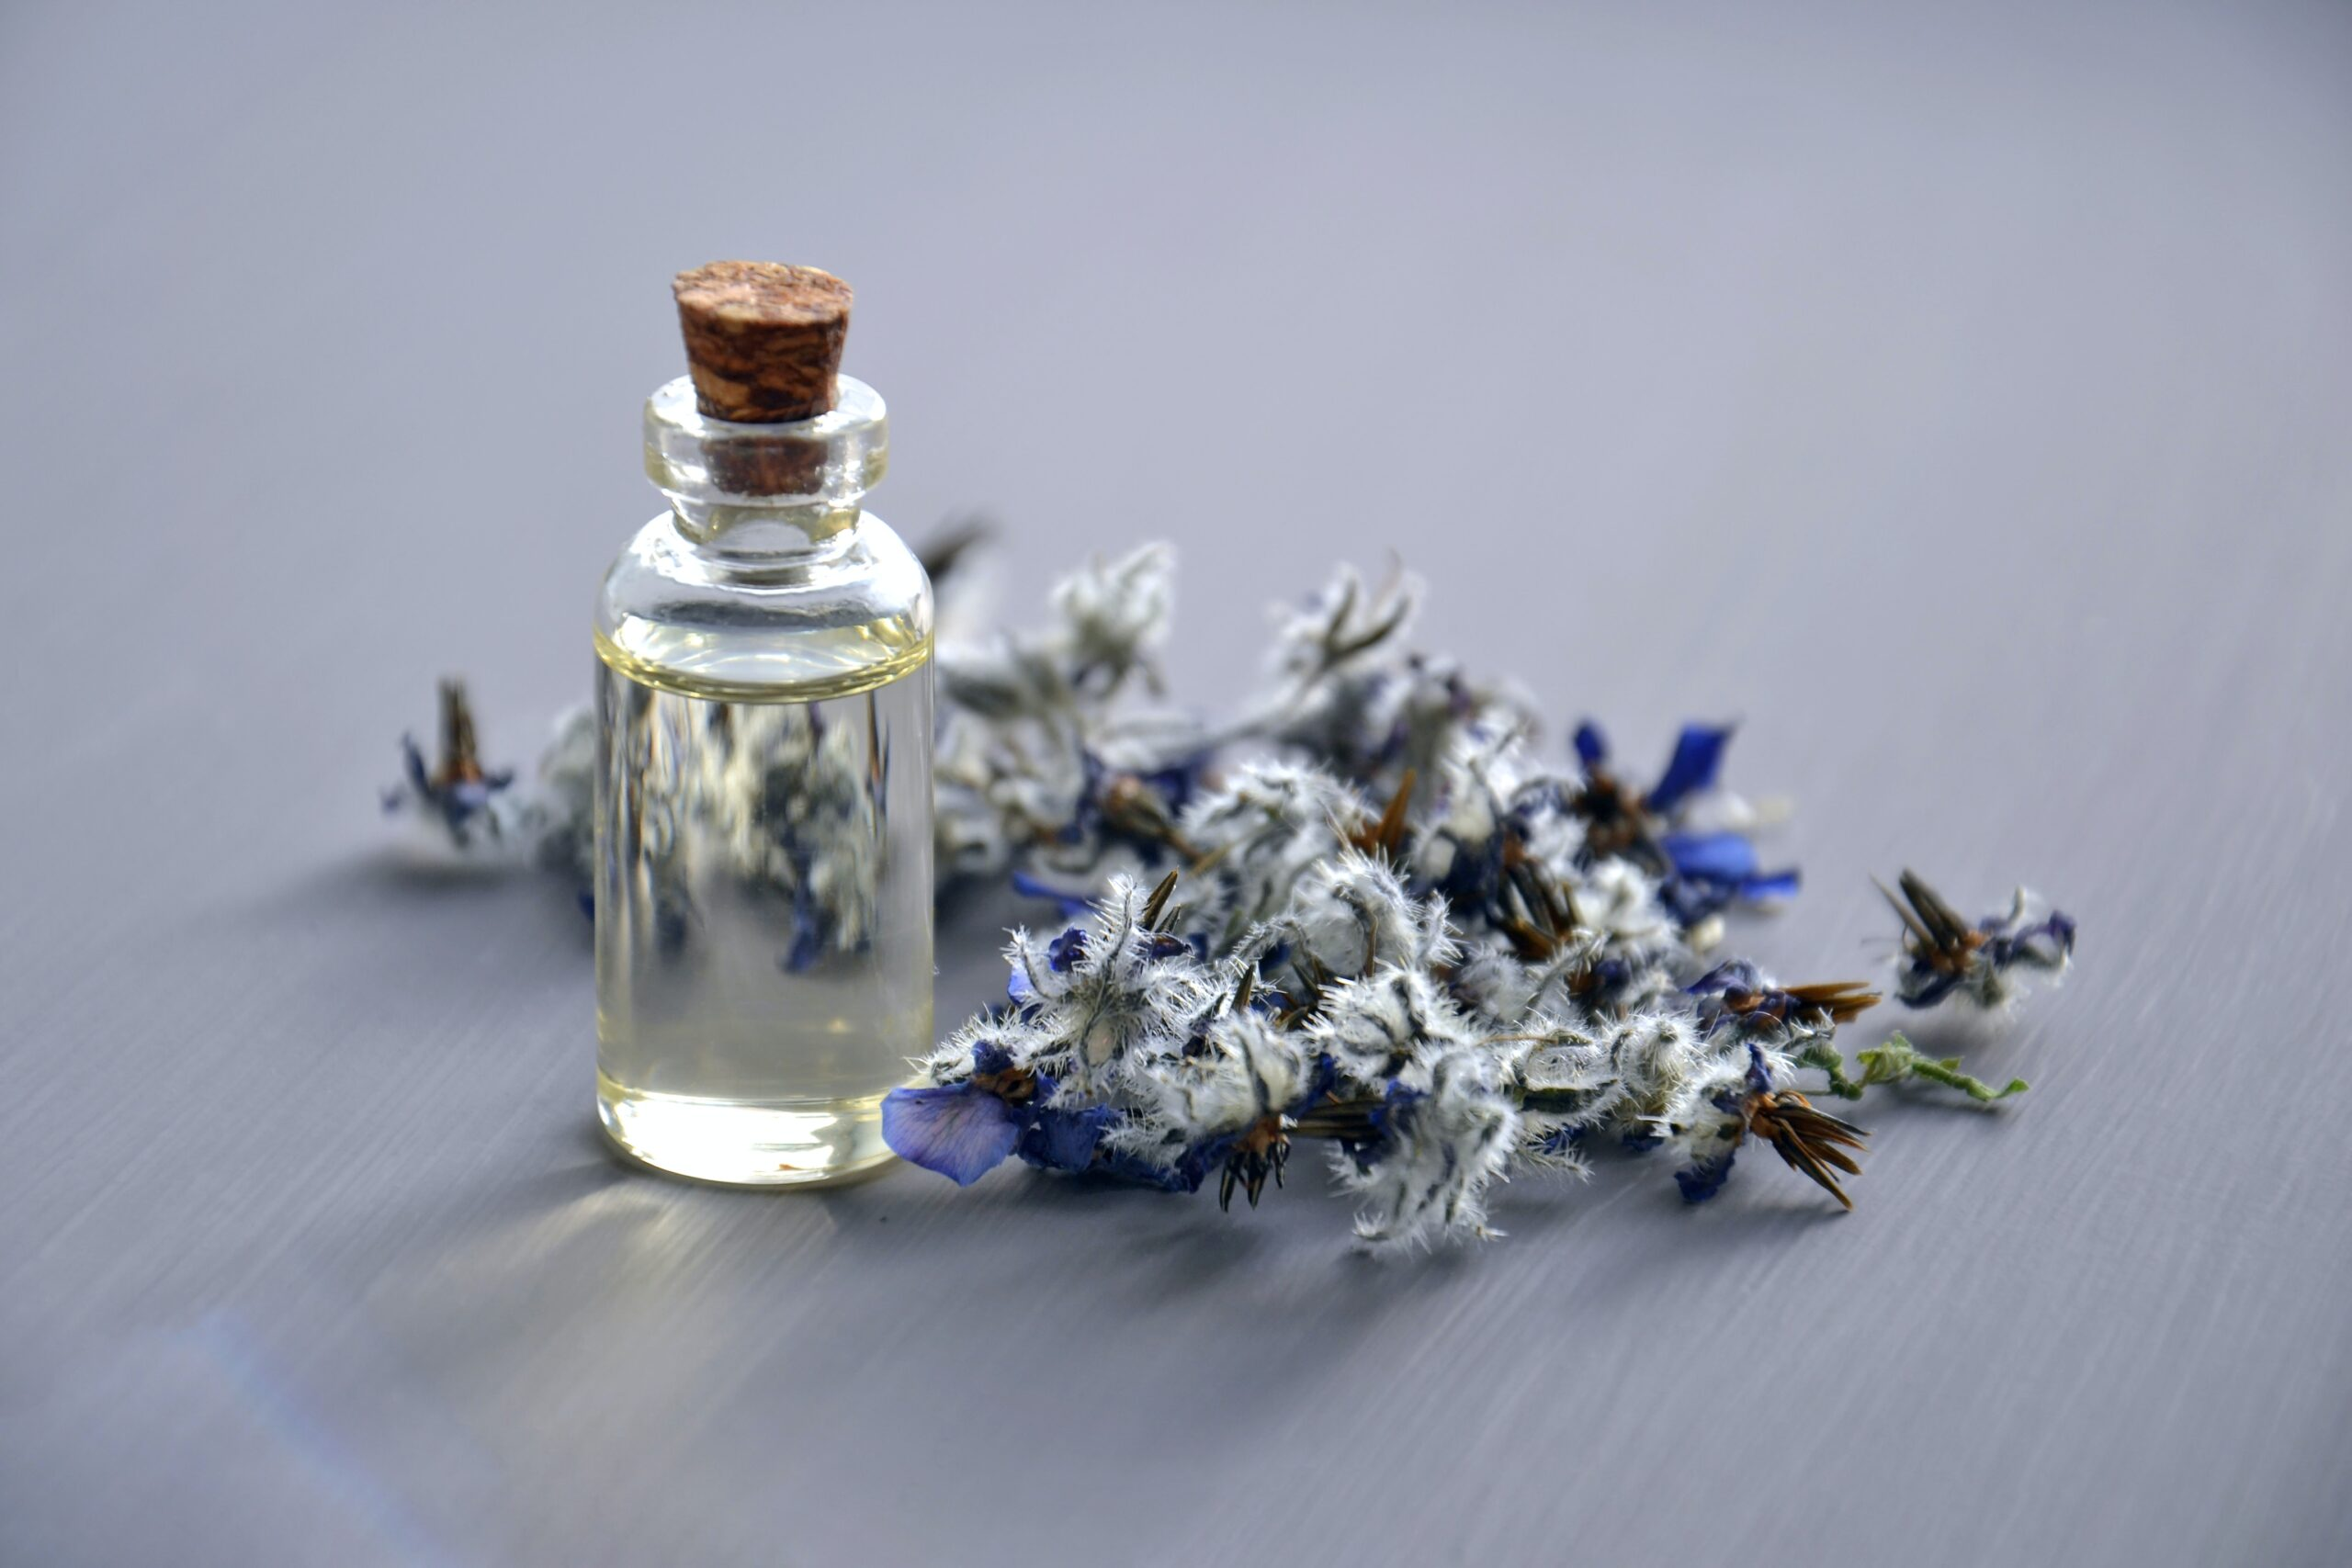 Lavender essential oil in bottle with flowers behind.